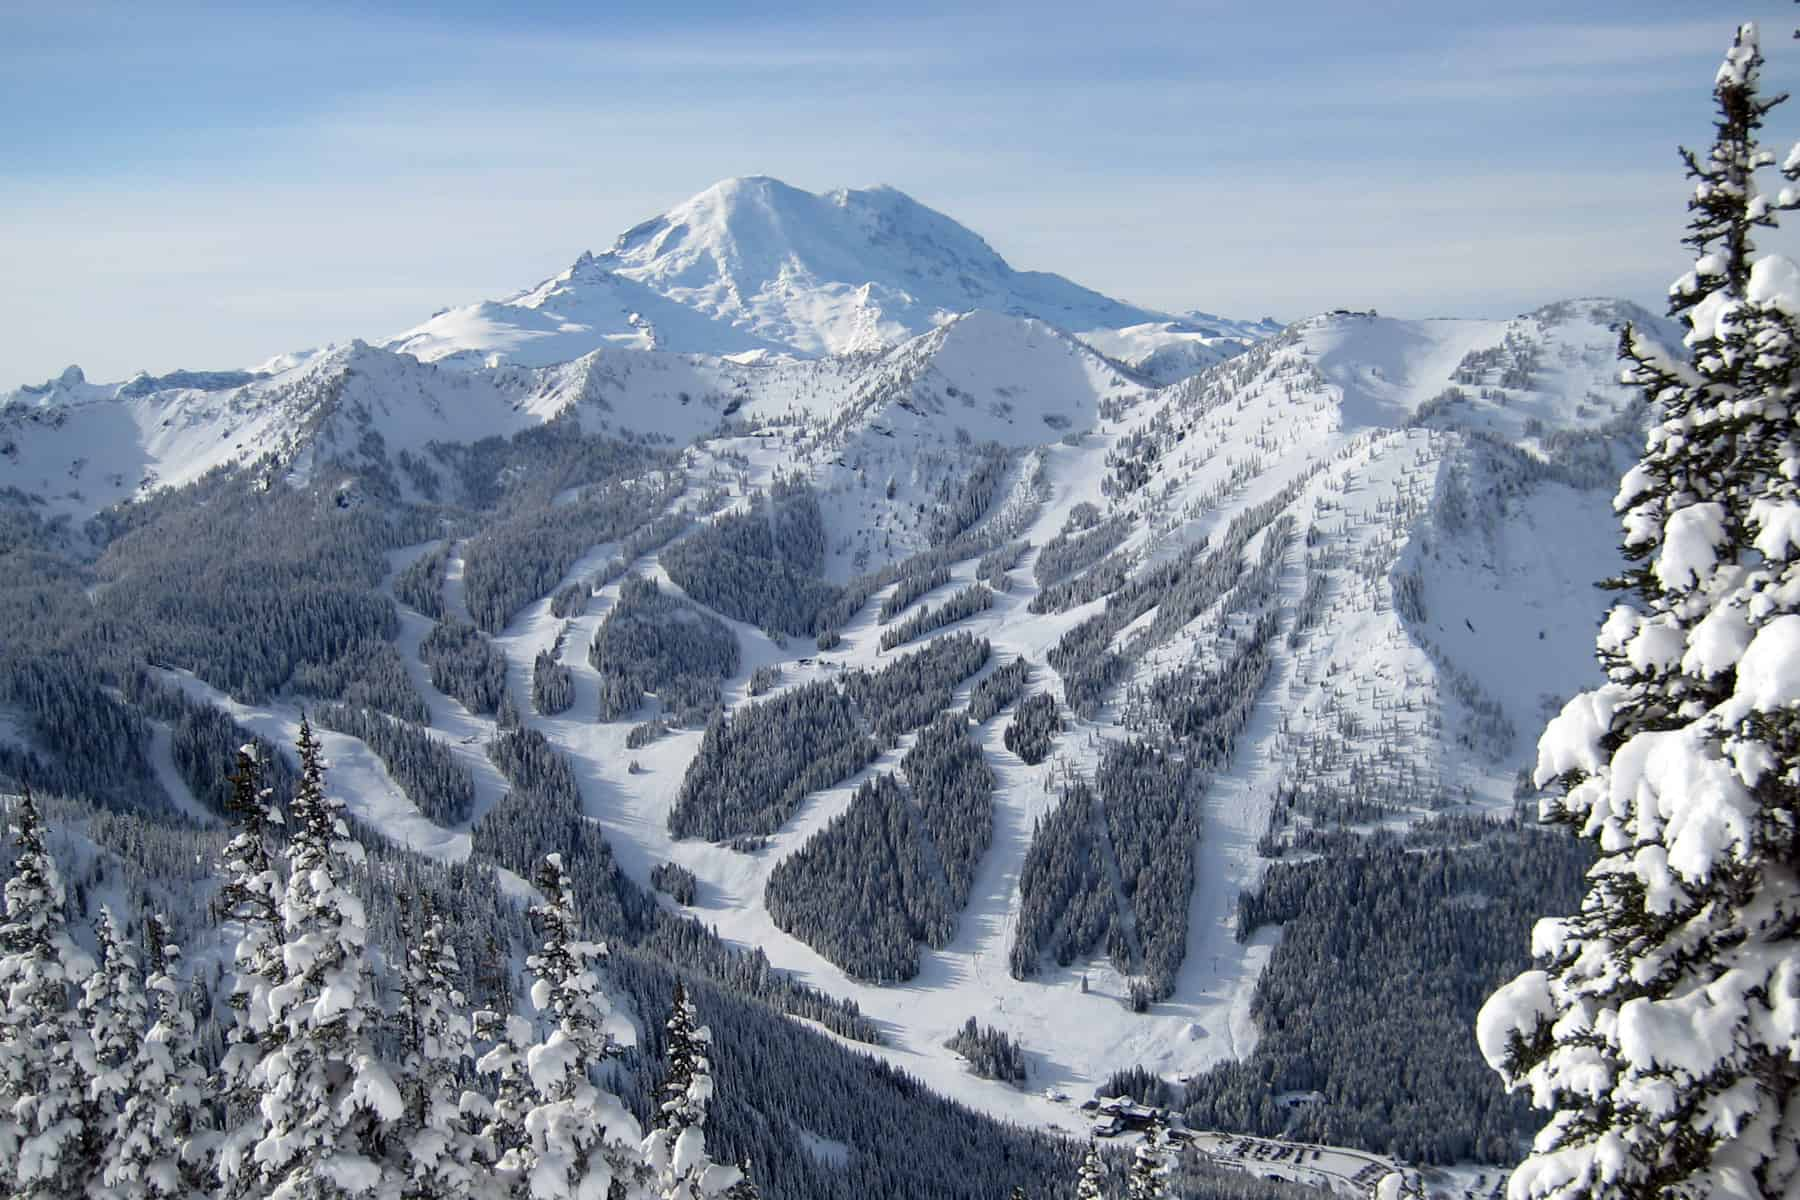 sky view of crystal mountain